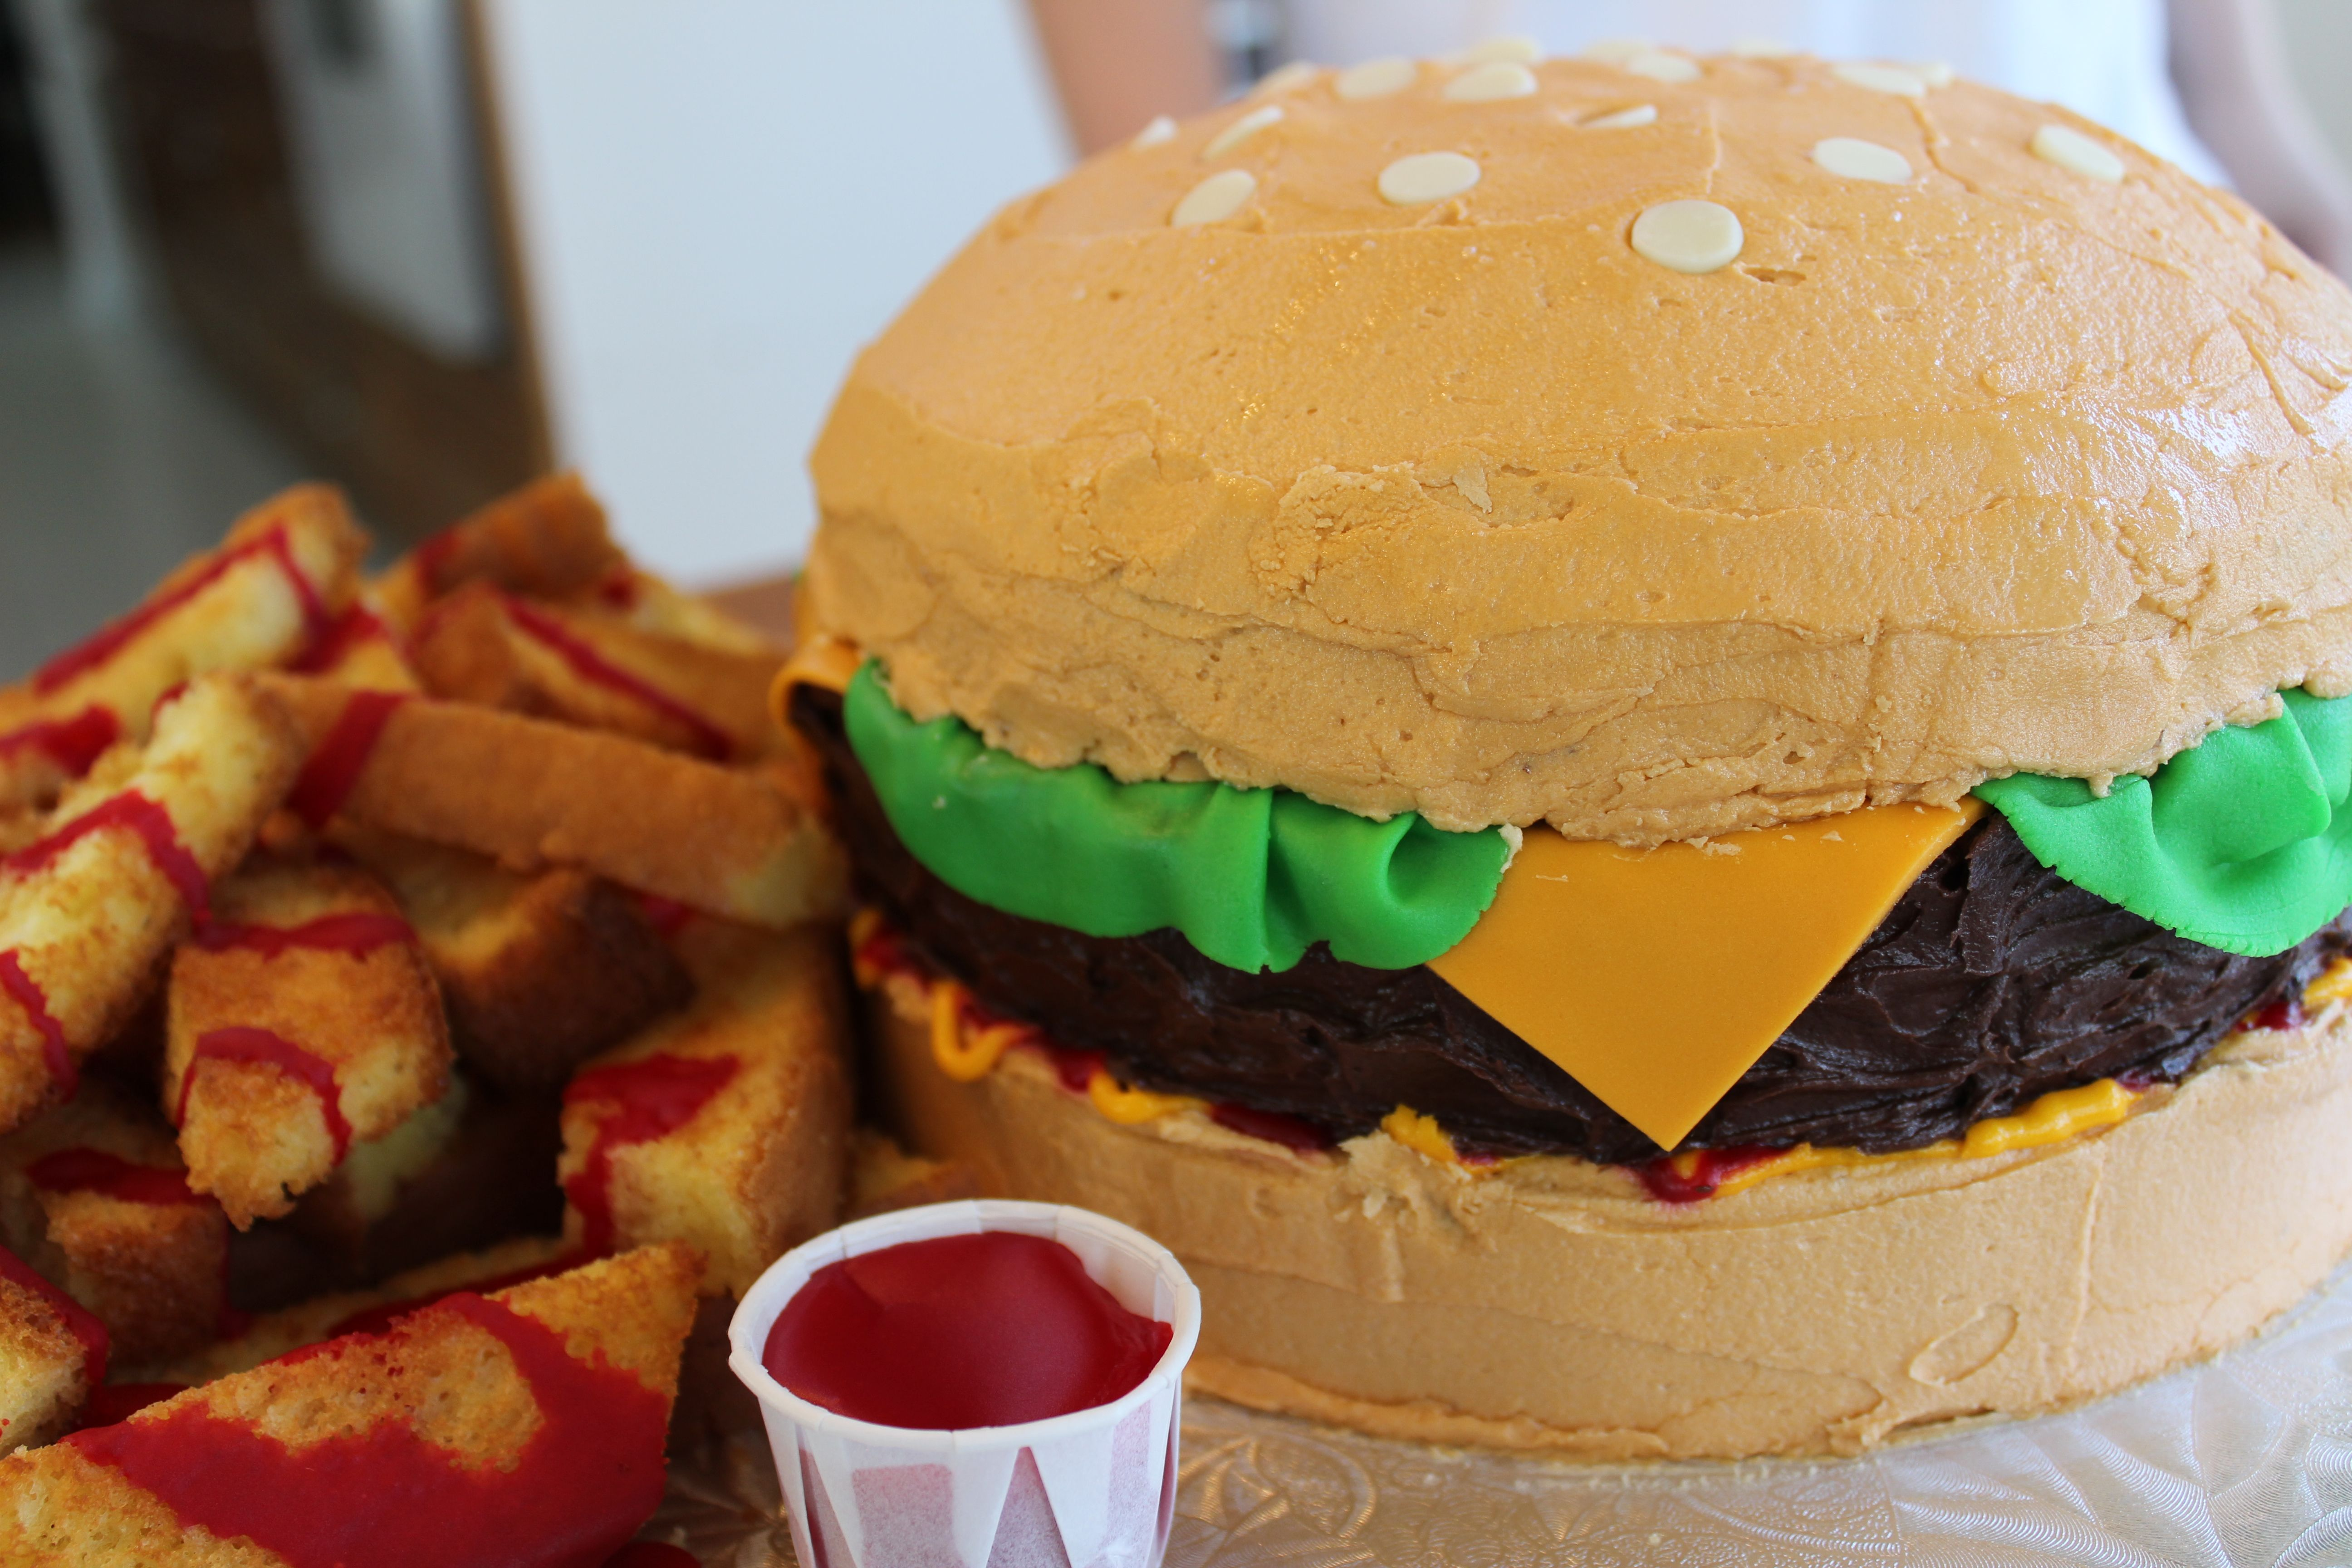 Noah's 14th birthday cheeseburger cake. Awesome!